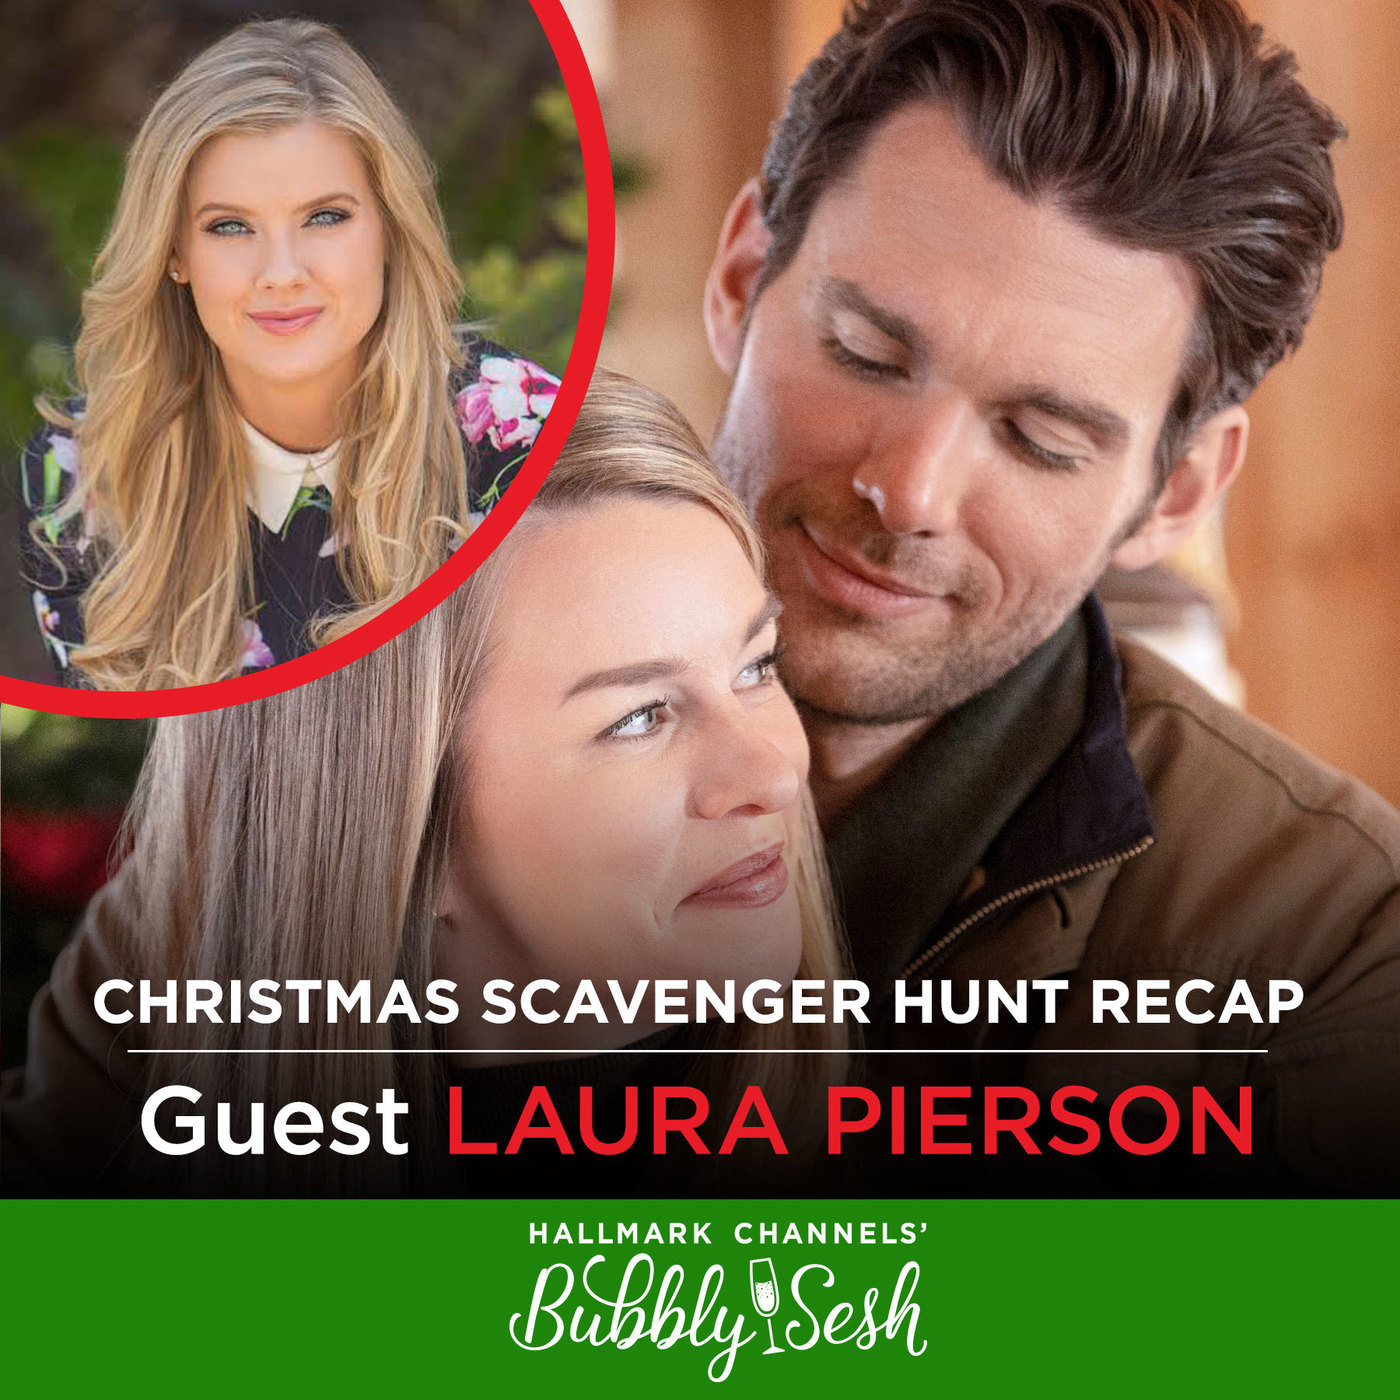 Christmas Scavenger Hunt with Laura Pierson